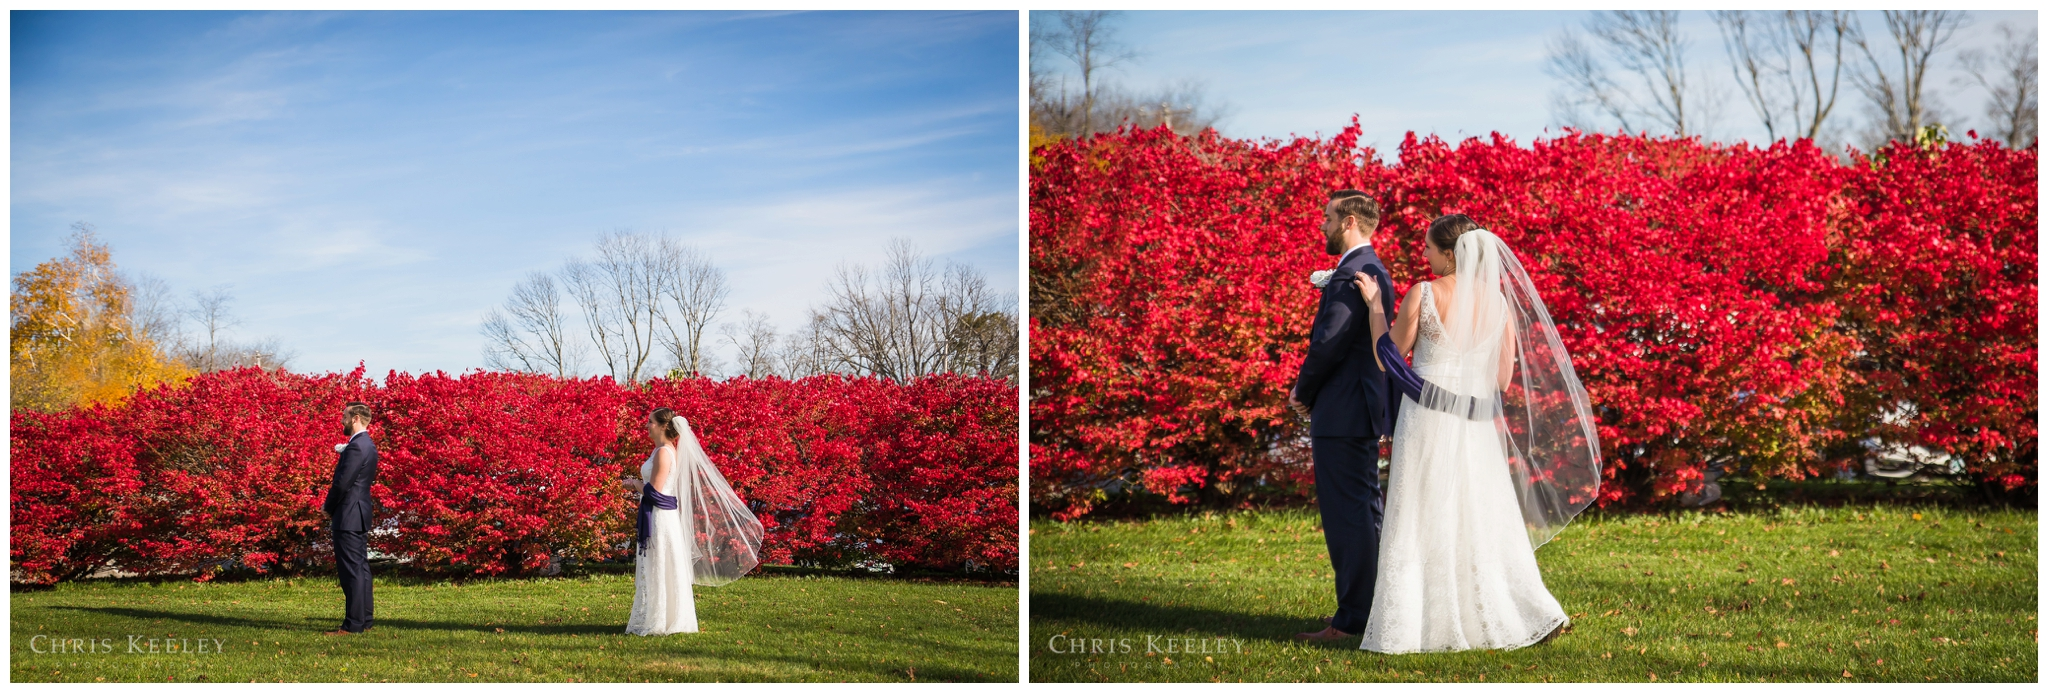 new-hampshire-wedding-photographer-portsmouth-country-club-26.jpg